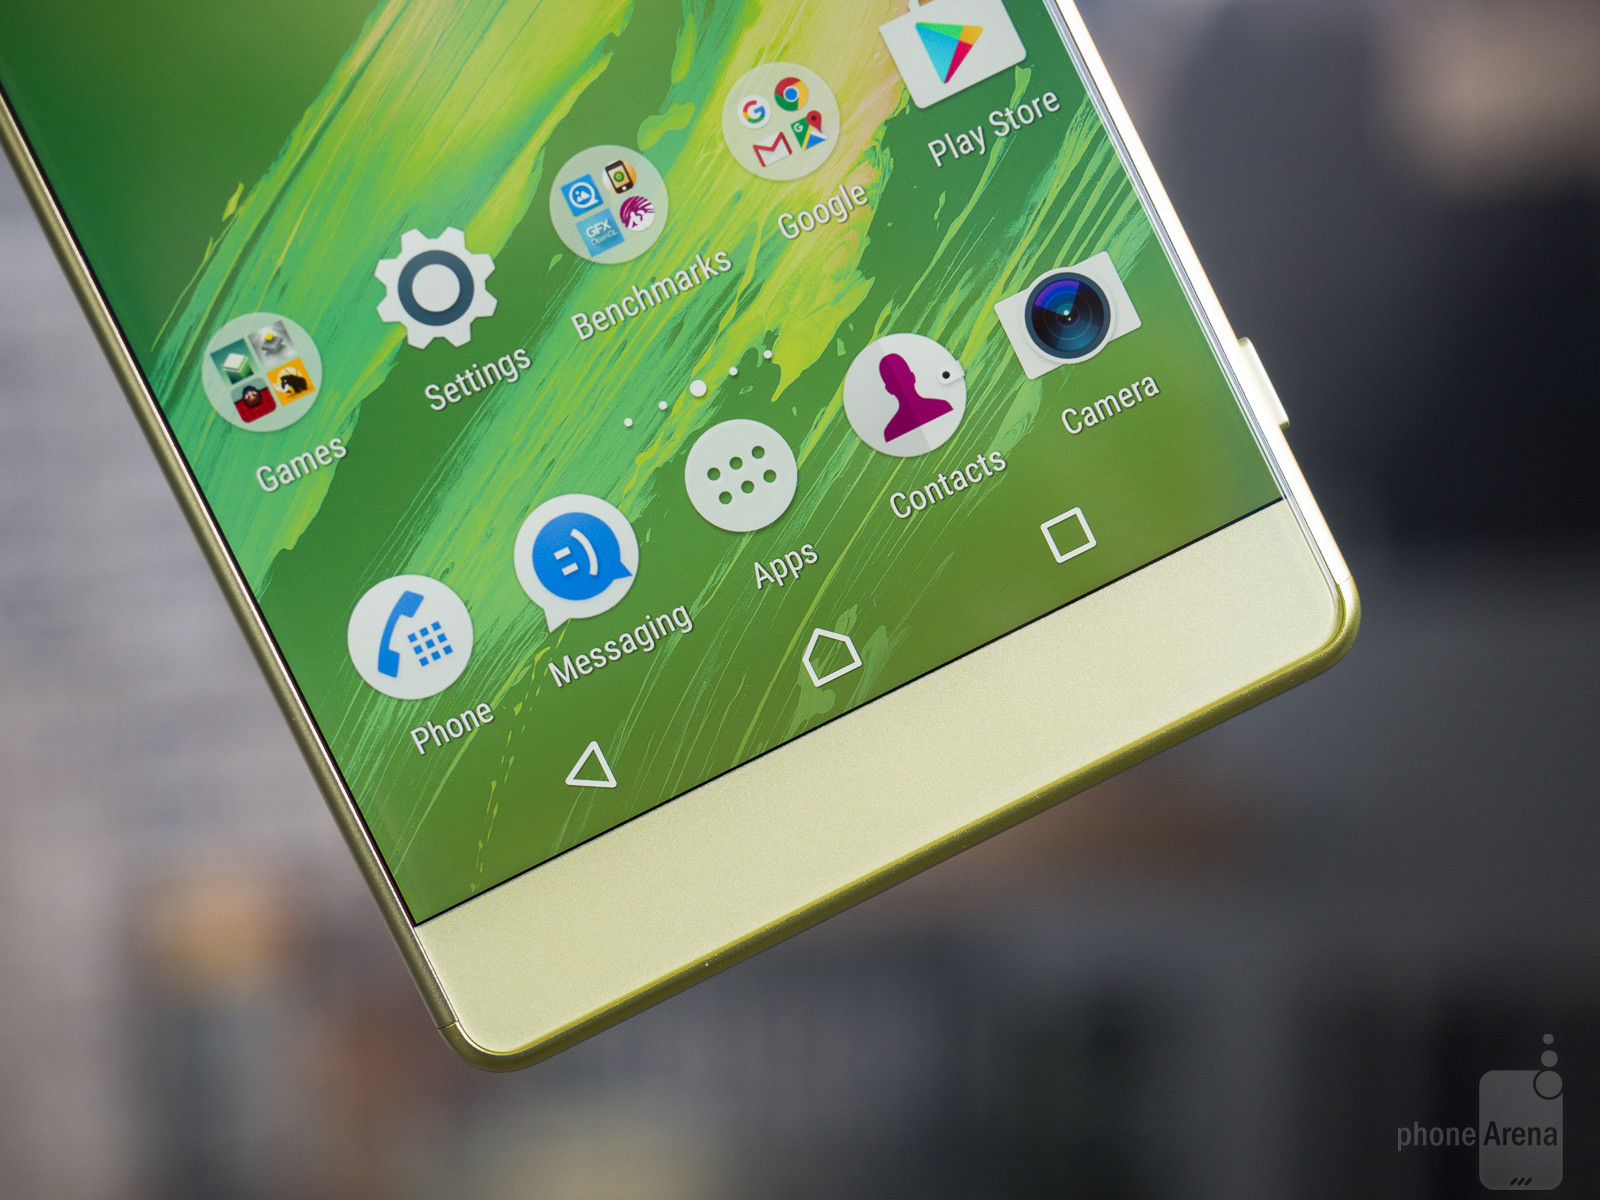 http://click.ir/wp-content/uploads/2016/07/Sony-Xperia-XA-Ultra-Review-006.jpg